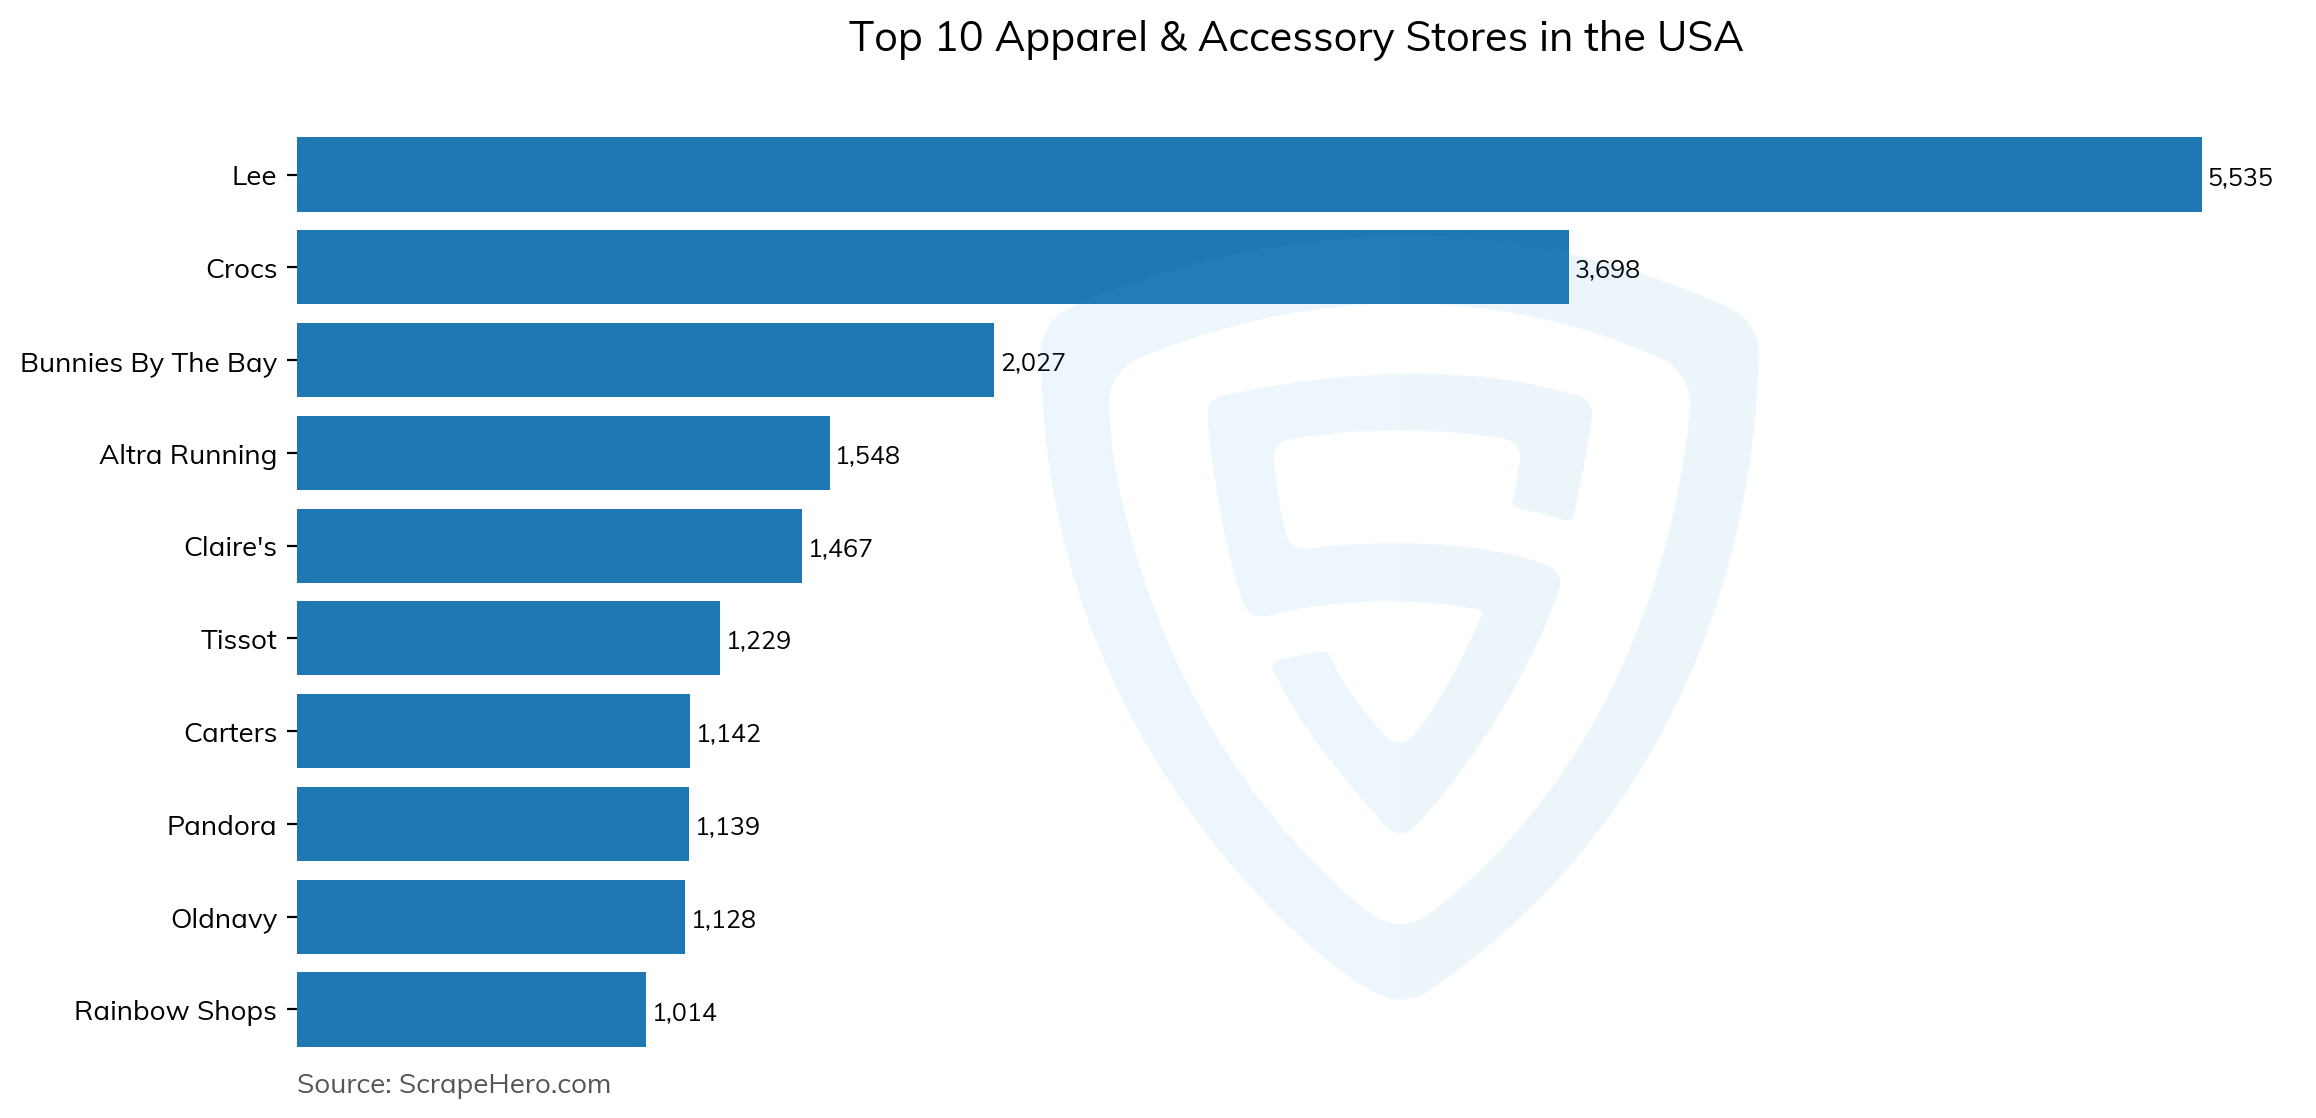 Bar chart of top 10 apparel & accessory stores in the usa in 2021